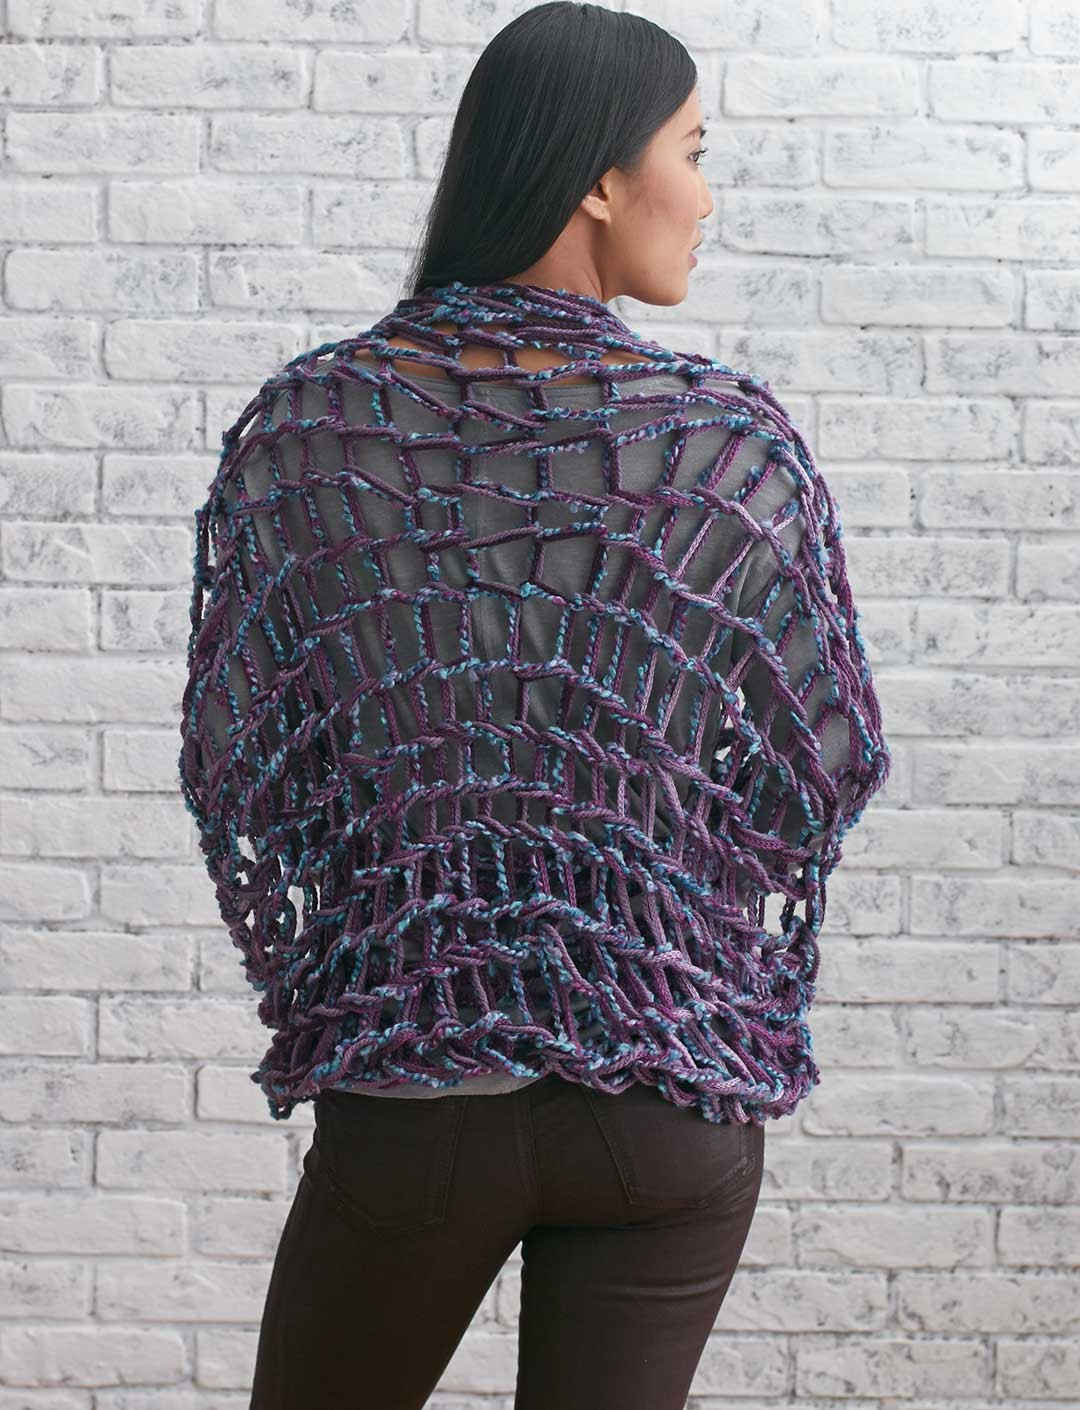 Shrug Knitting Patterns For Beginners : Bernat Arm Knit Shrug, Arm Knit Pattern Yarnspirations